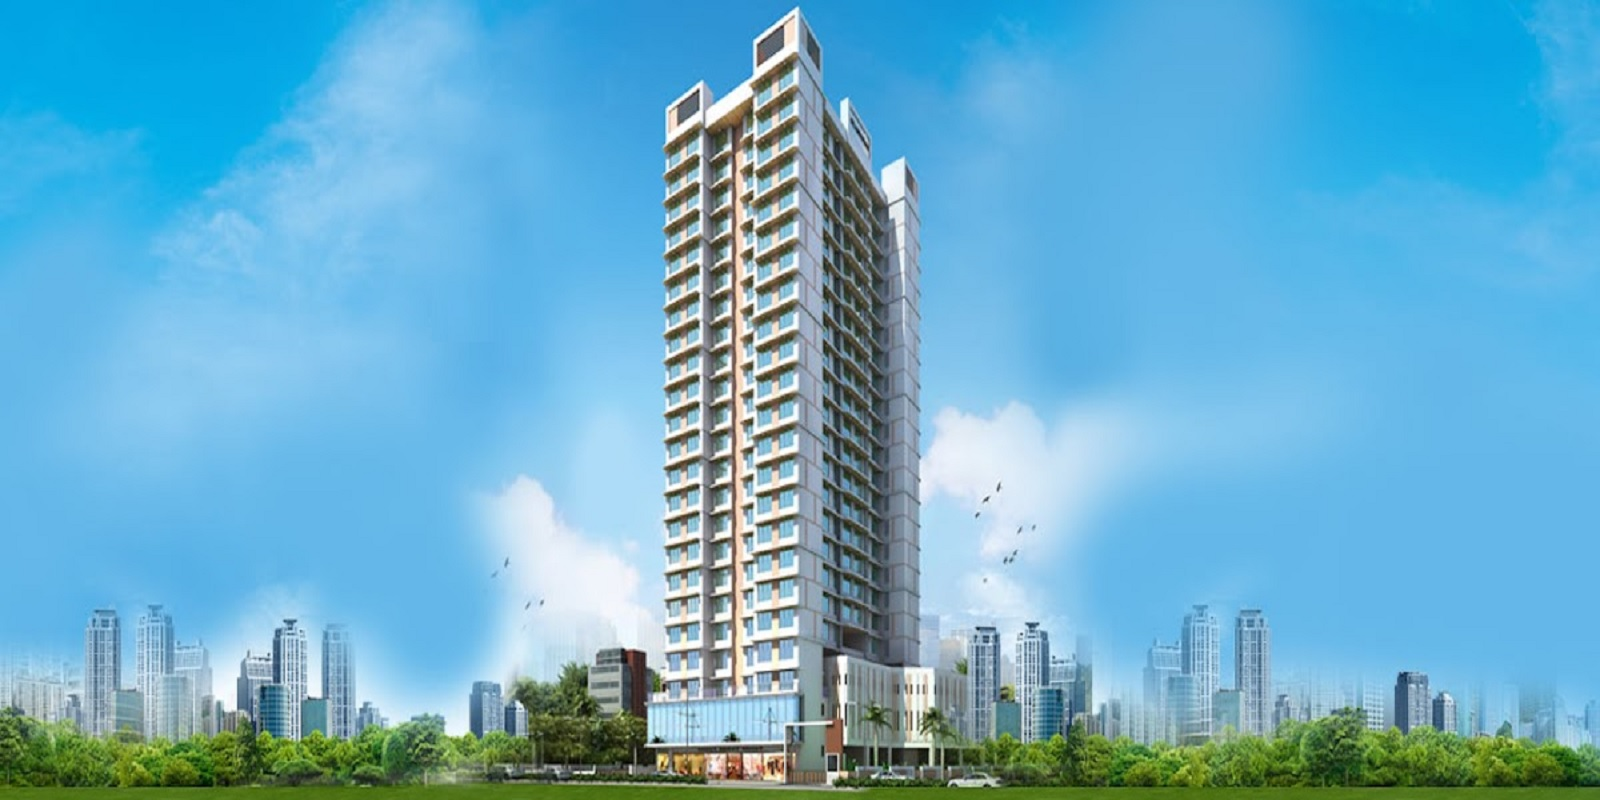 om saath grandness project project large image1